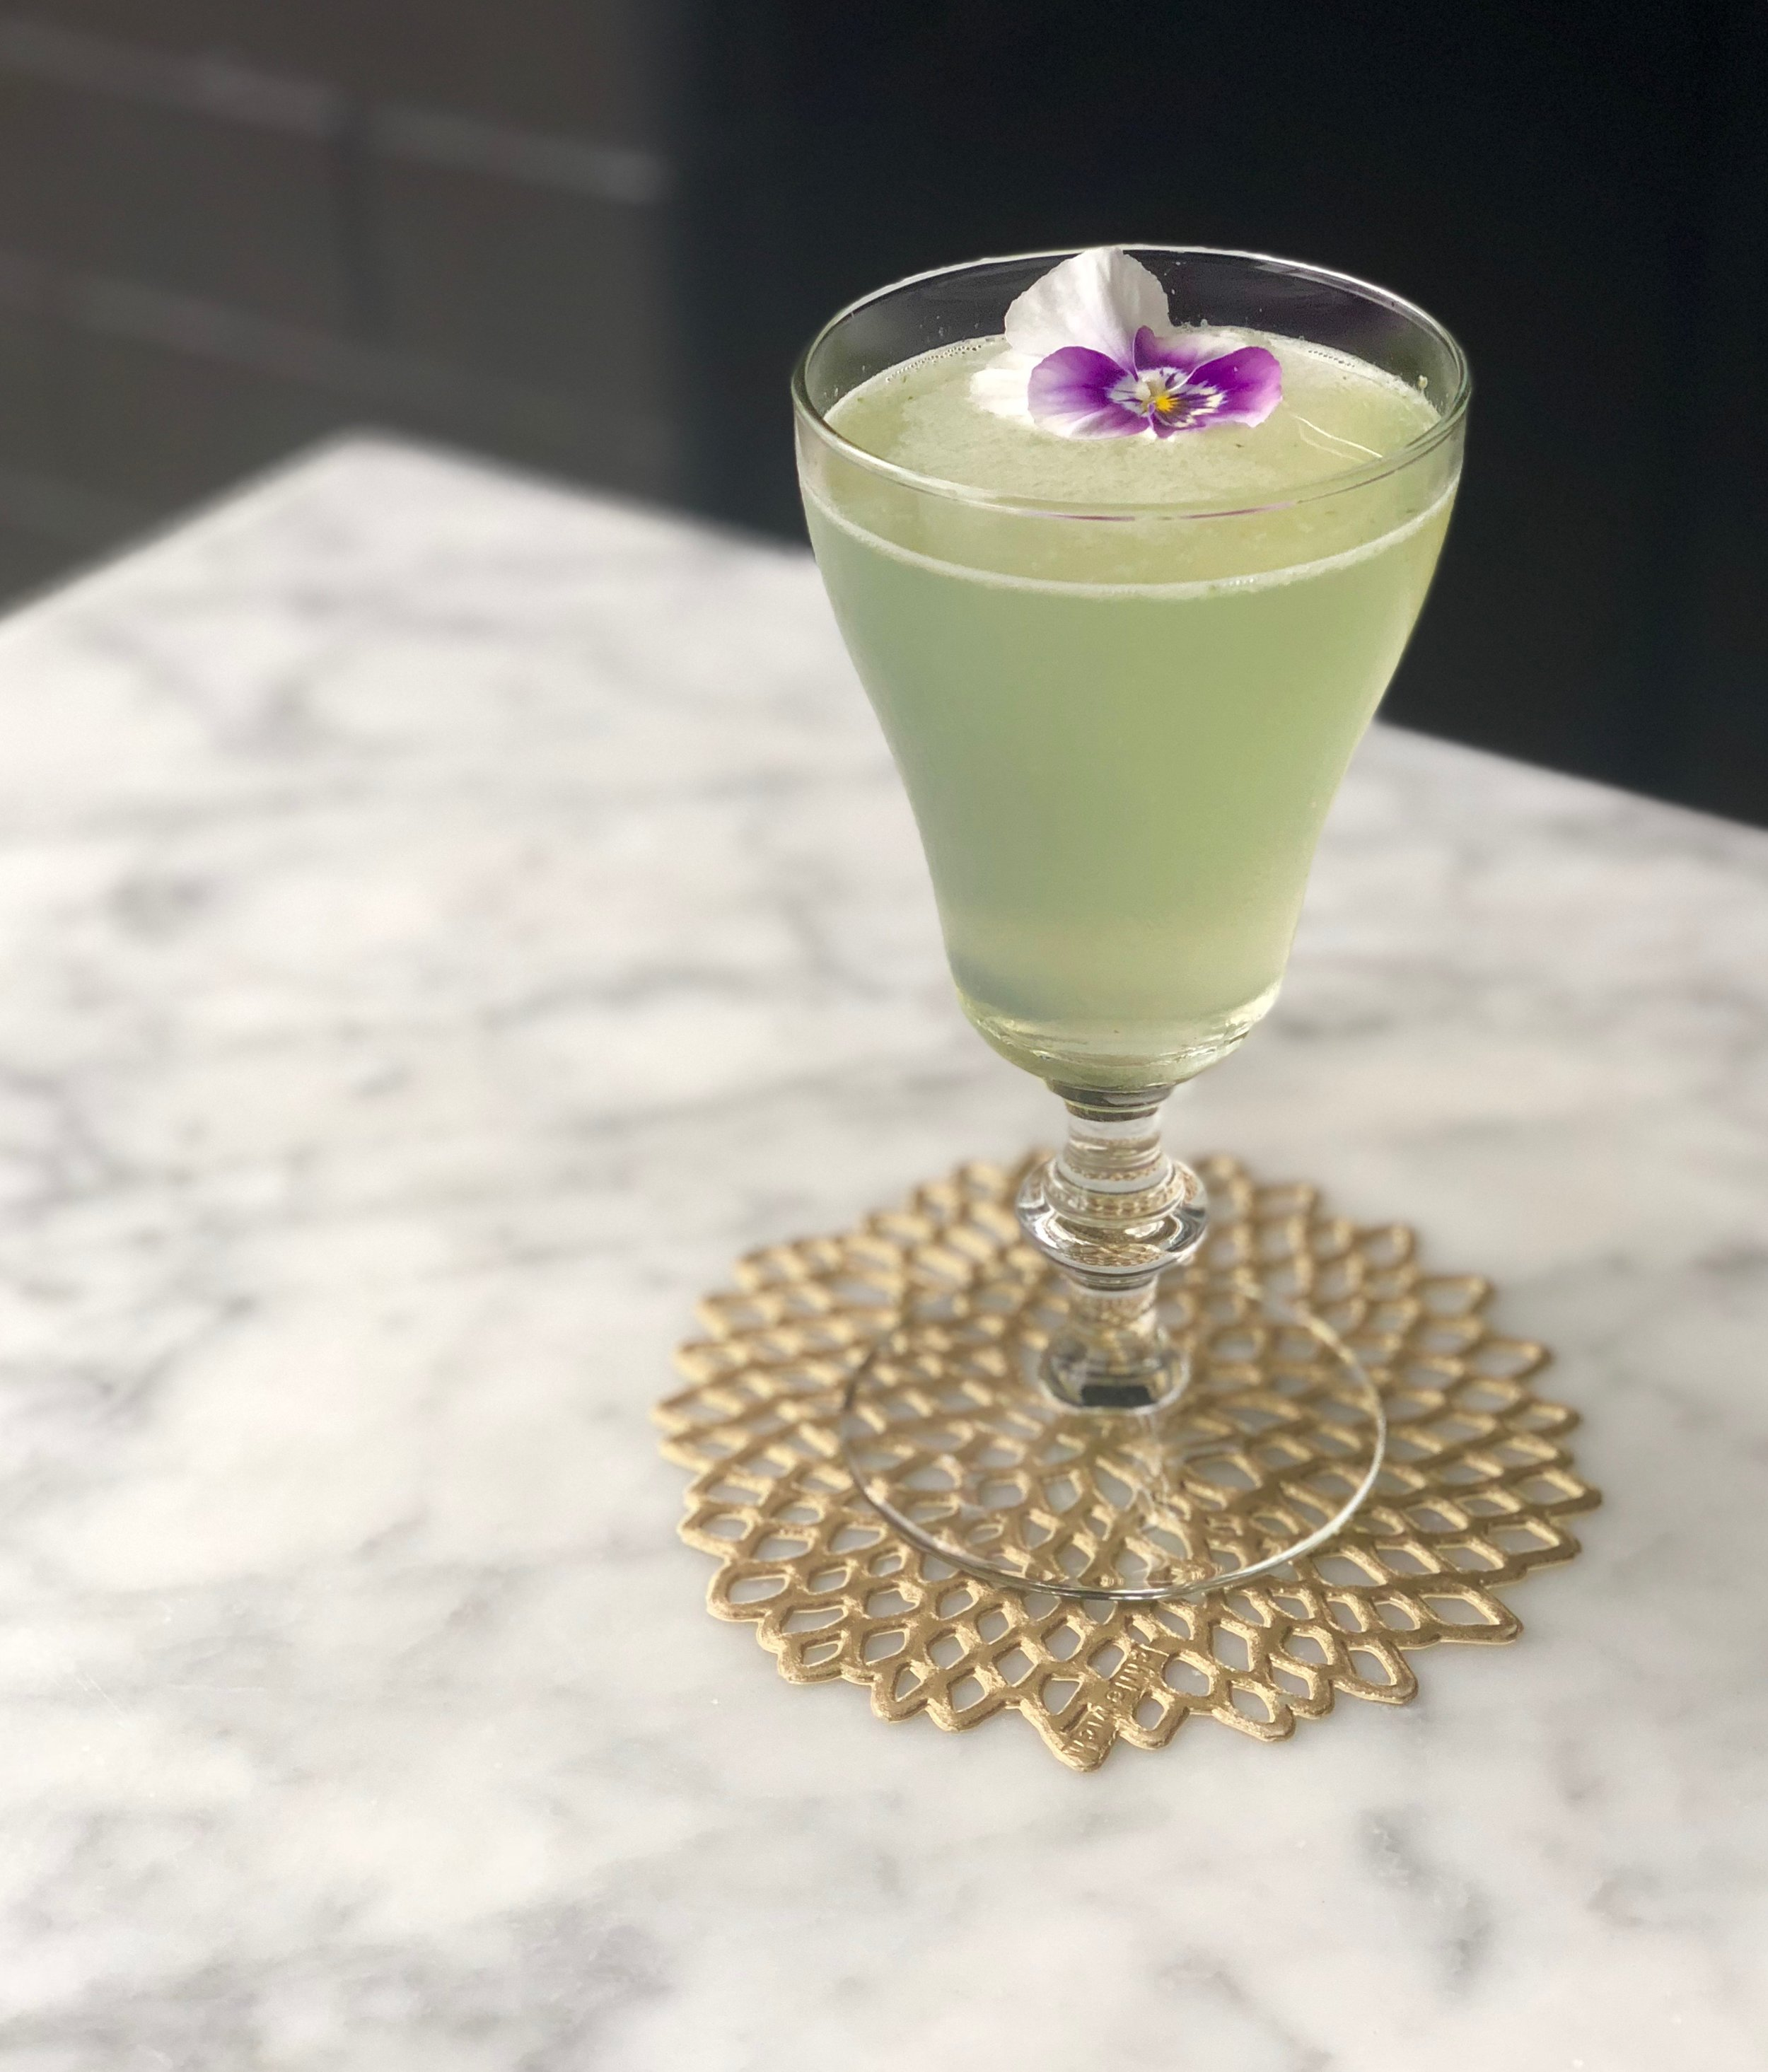 Green Jacket cocktail made with Wheatley Vodka